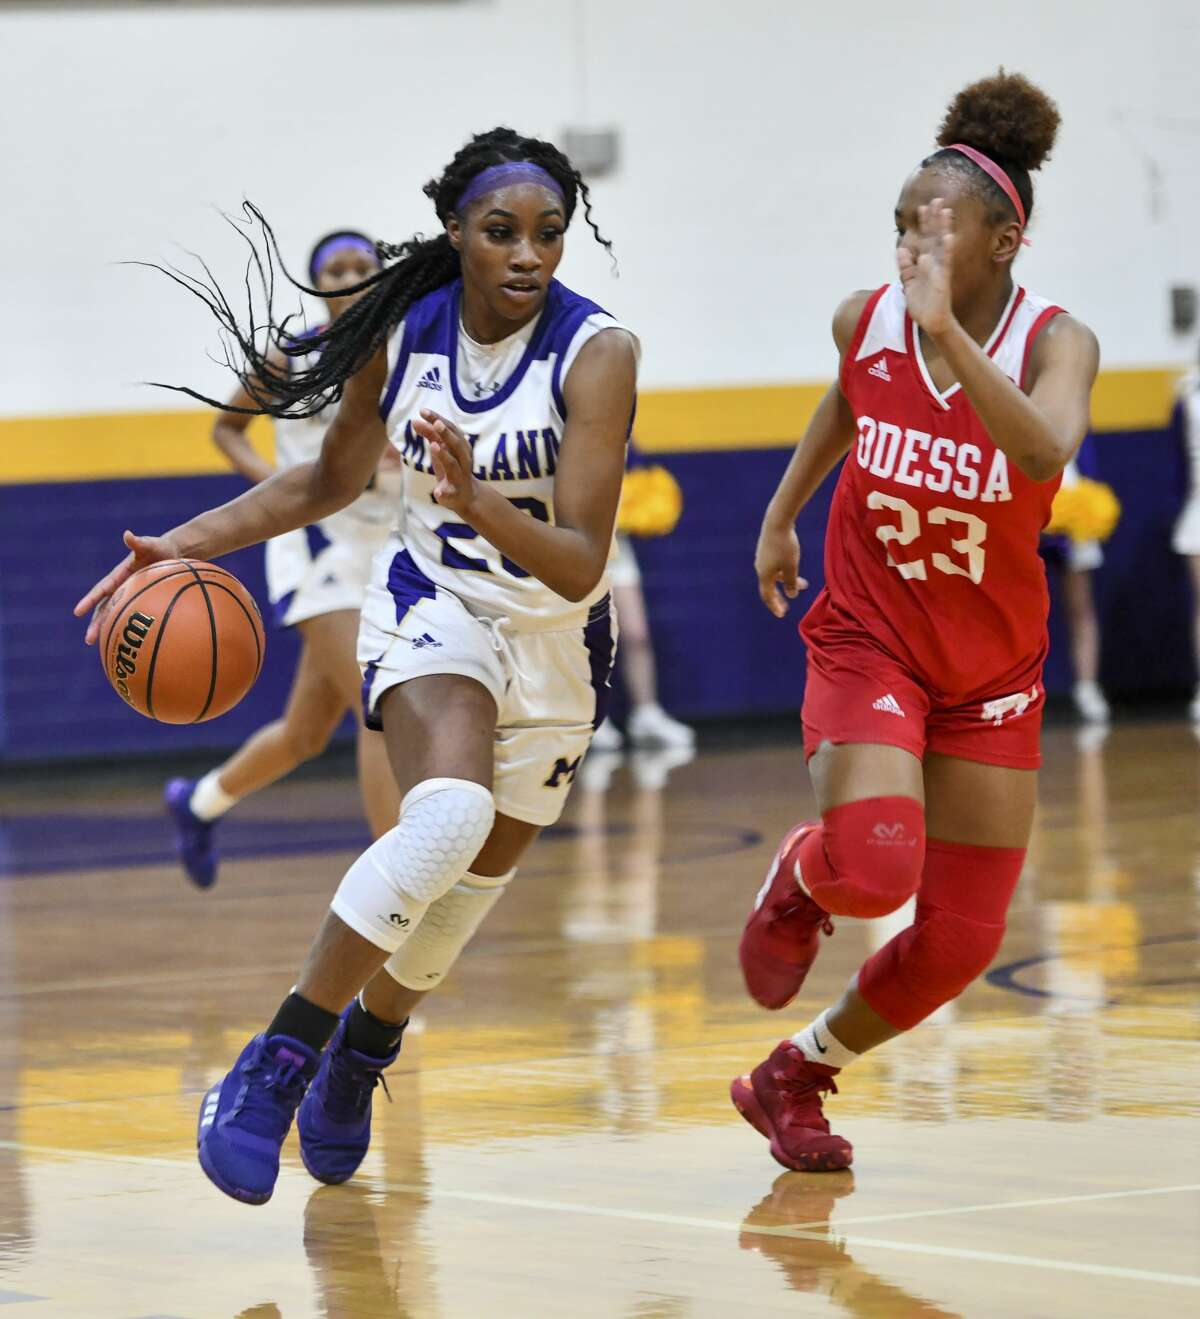 Midland High's Kobe Powell dribbles the ball down the court as Odessa High's Kazyiah Hicks (23) guards her Tuesday, Jan. 28, 2020 at Midland High School.